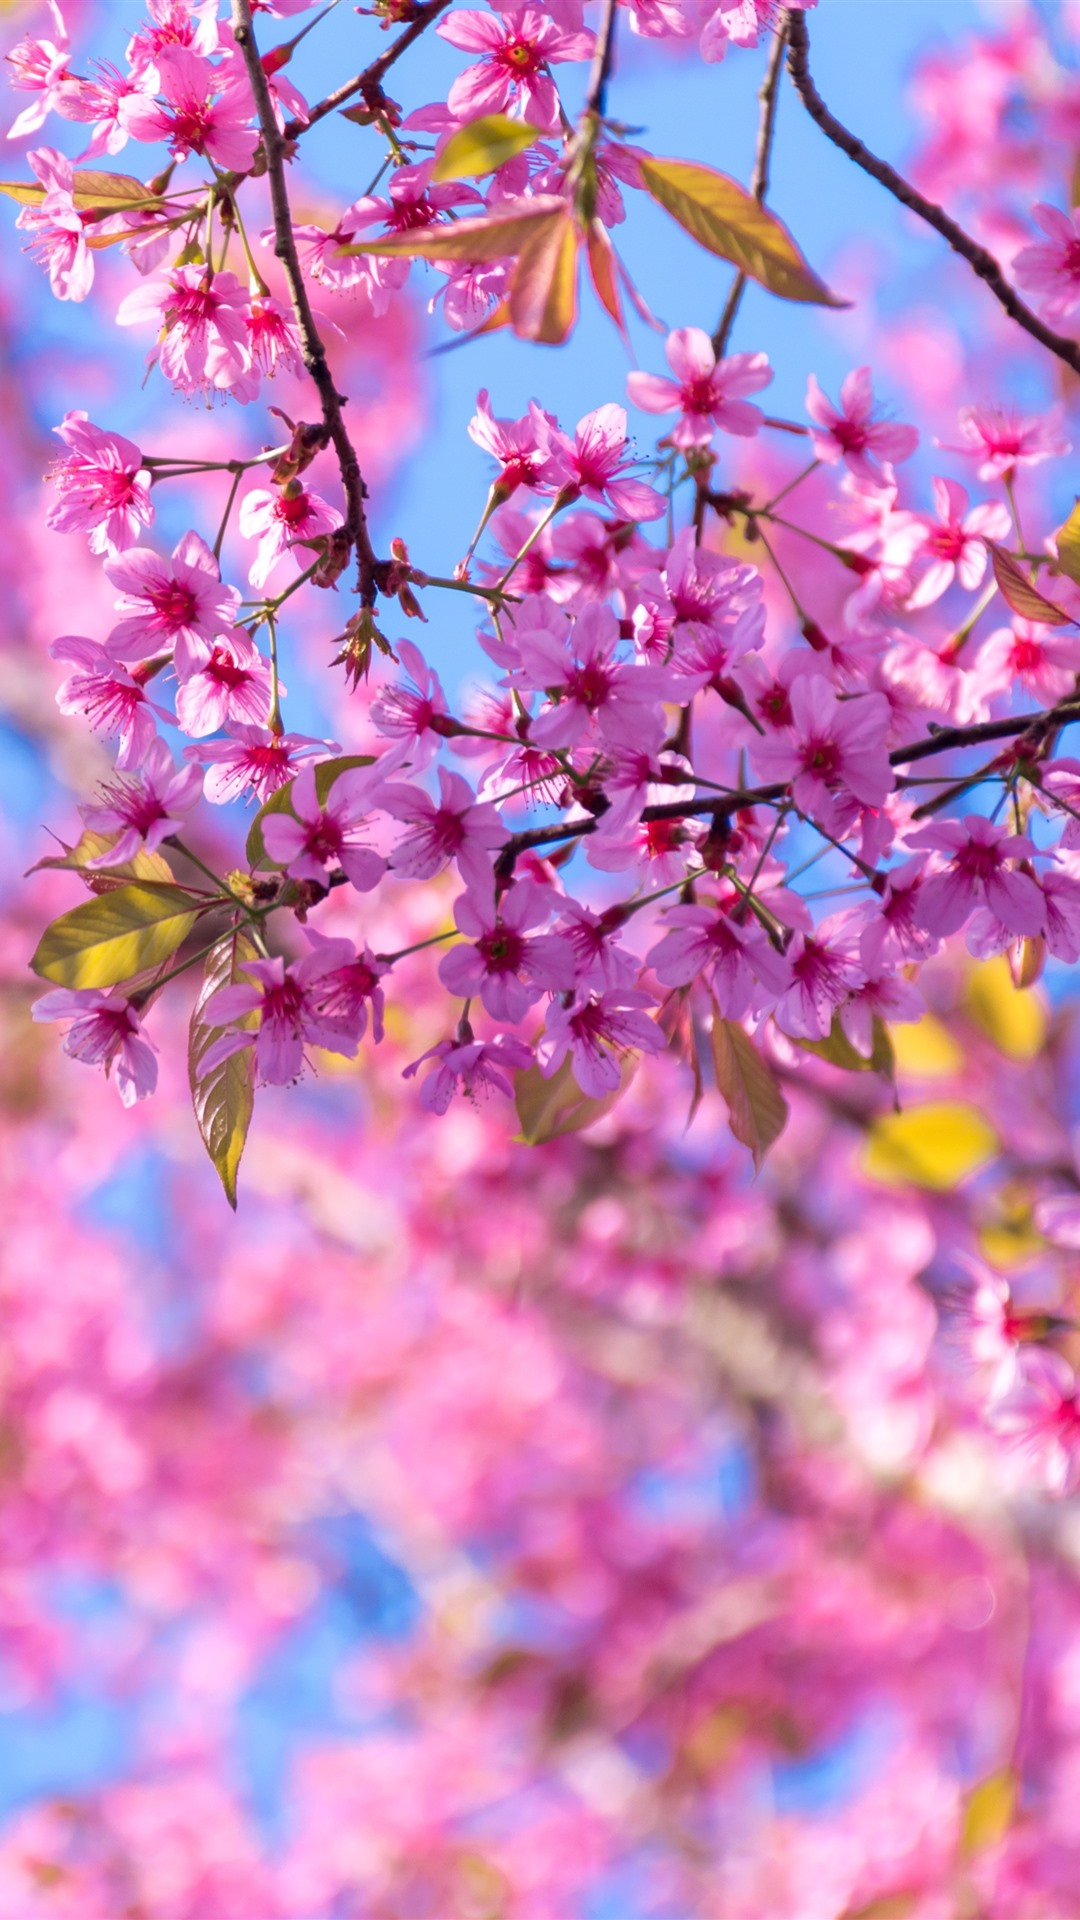 100 Wallpaper Iphone 6s Sakura Hinhanhsieudep Net